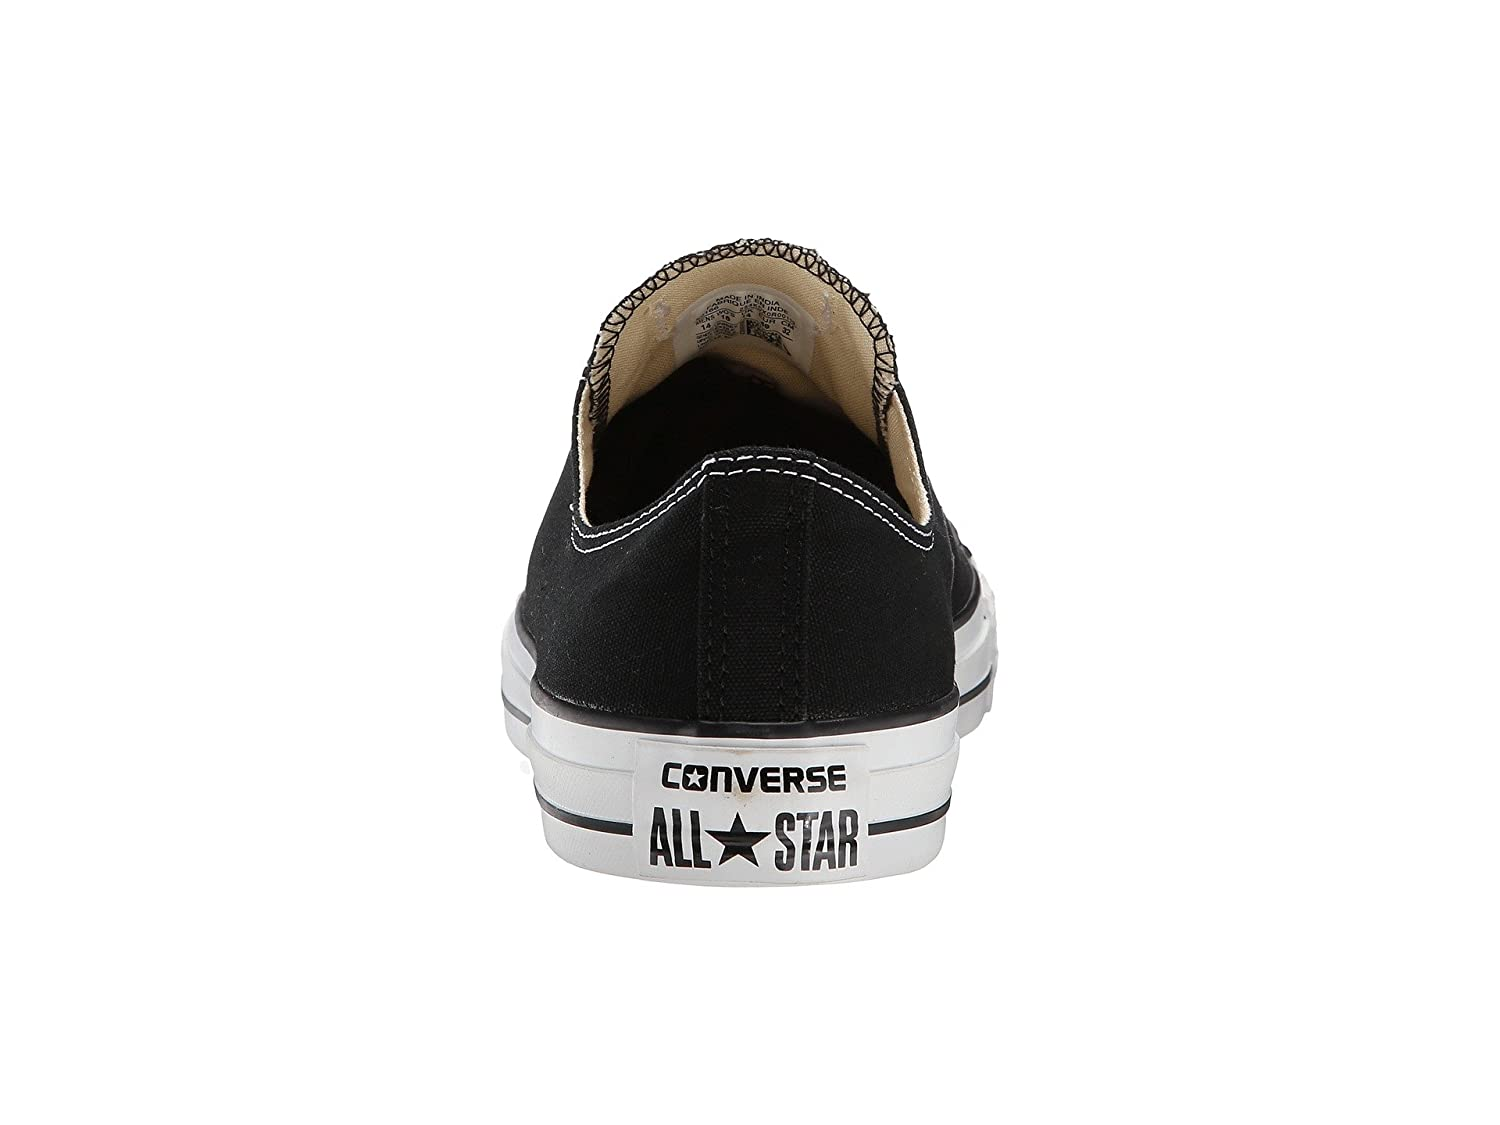 Converse Chuck Taylor All Star Core Ox B0775HY4WD 44 M EU / 12 B(M) US Women / 10 D(M) US Men|Black-white